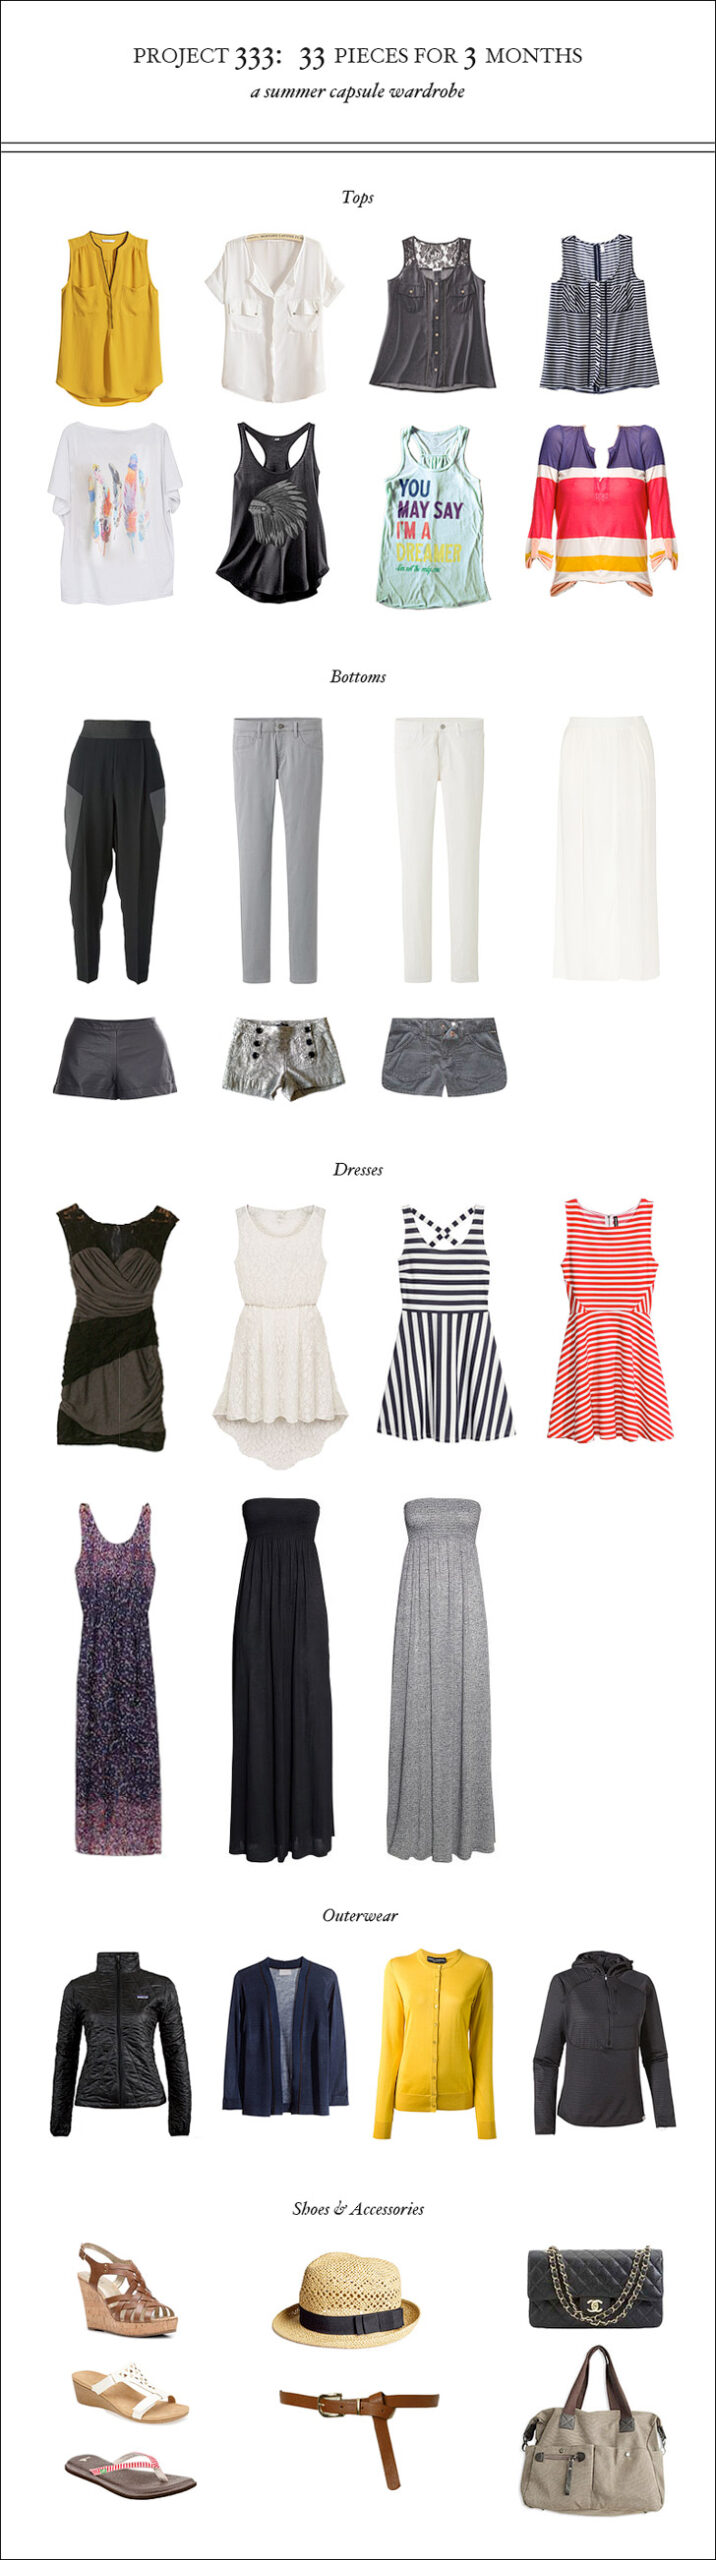 Essential Summer Capsule Wardrobe – Project 333